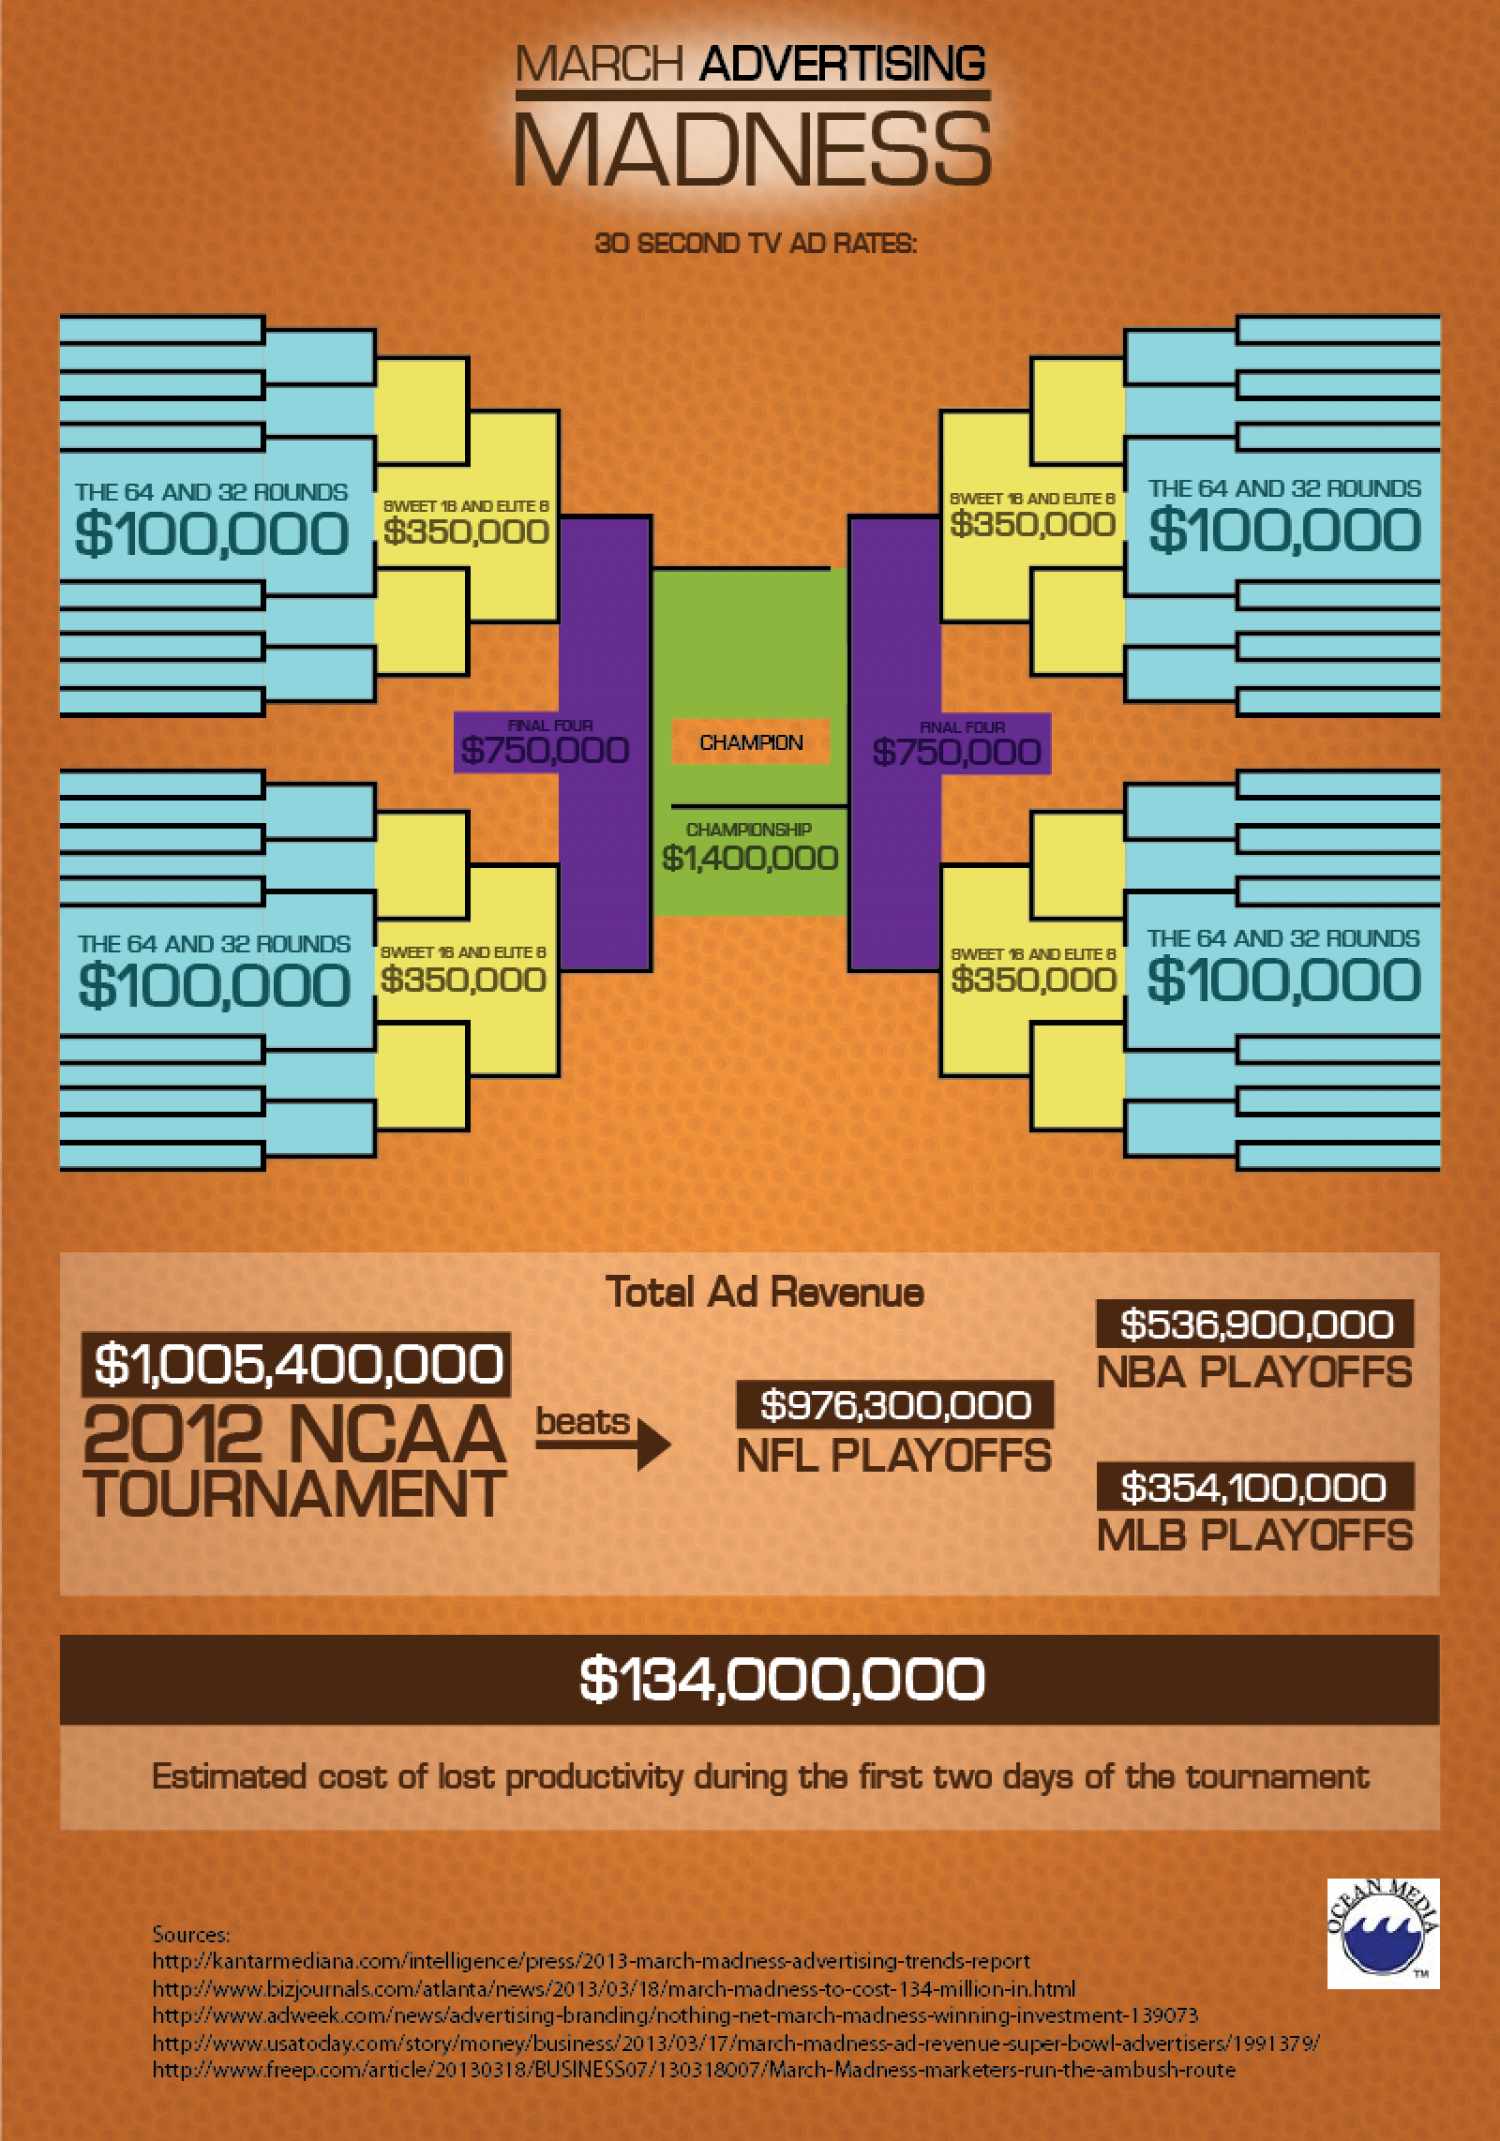 March Advertising Madness Infographic